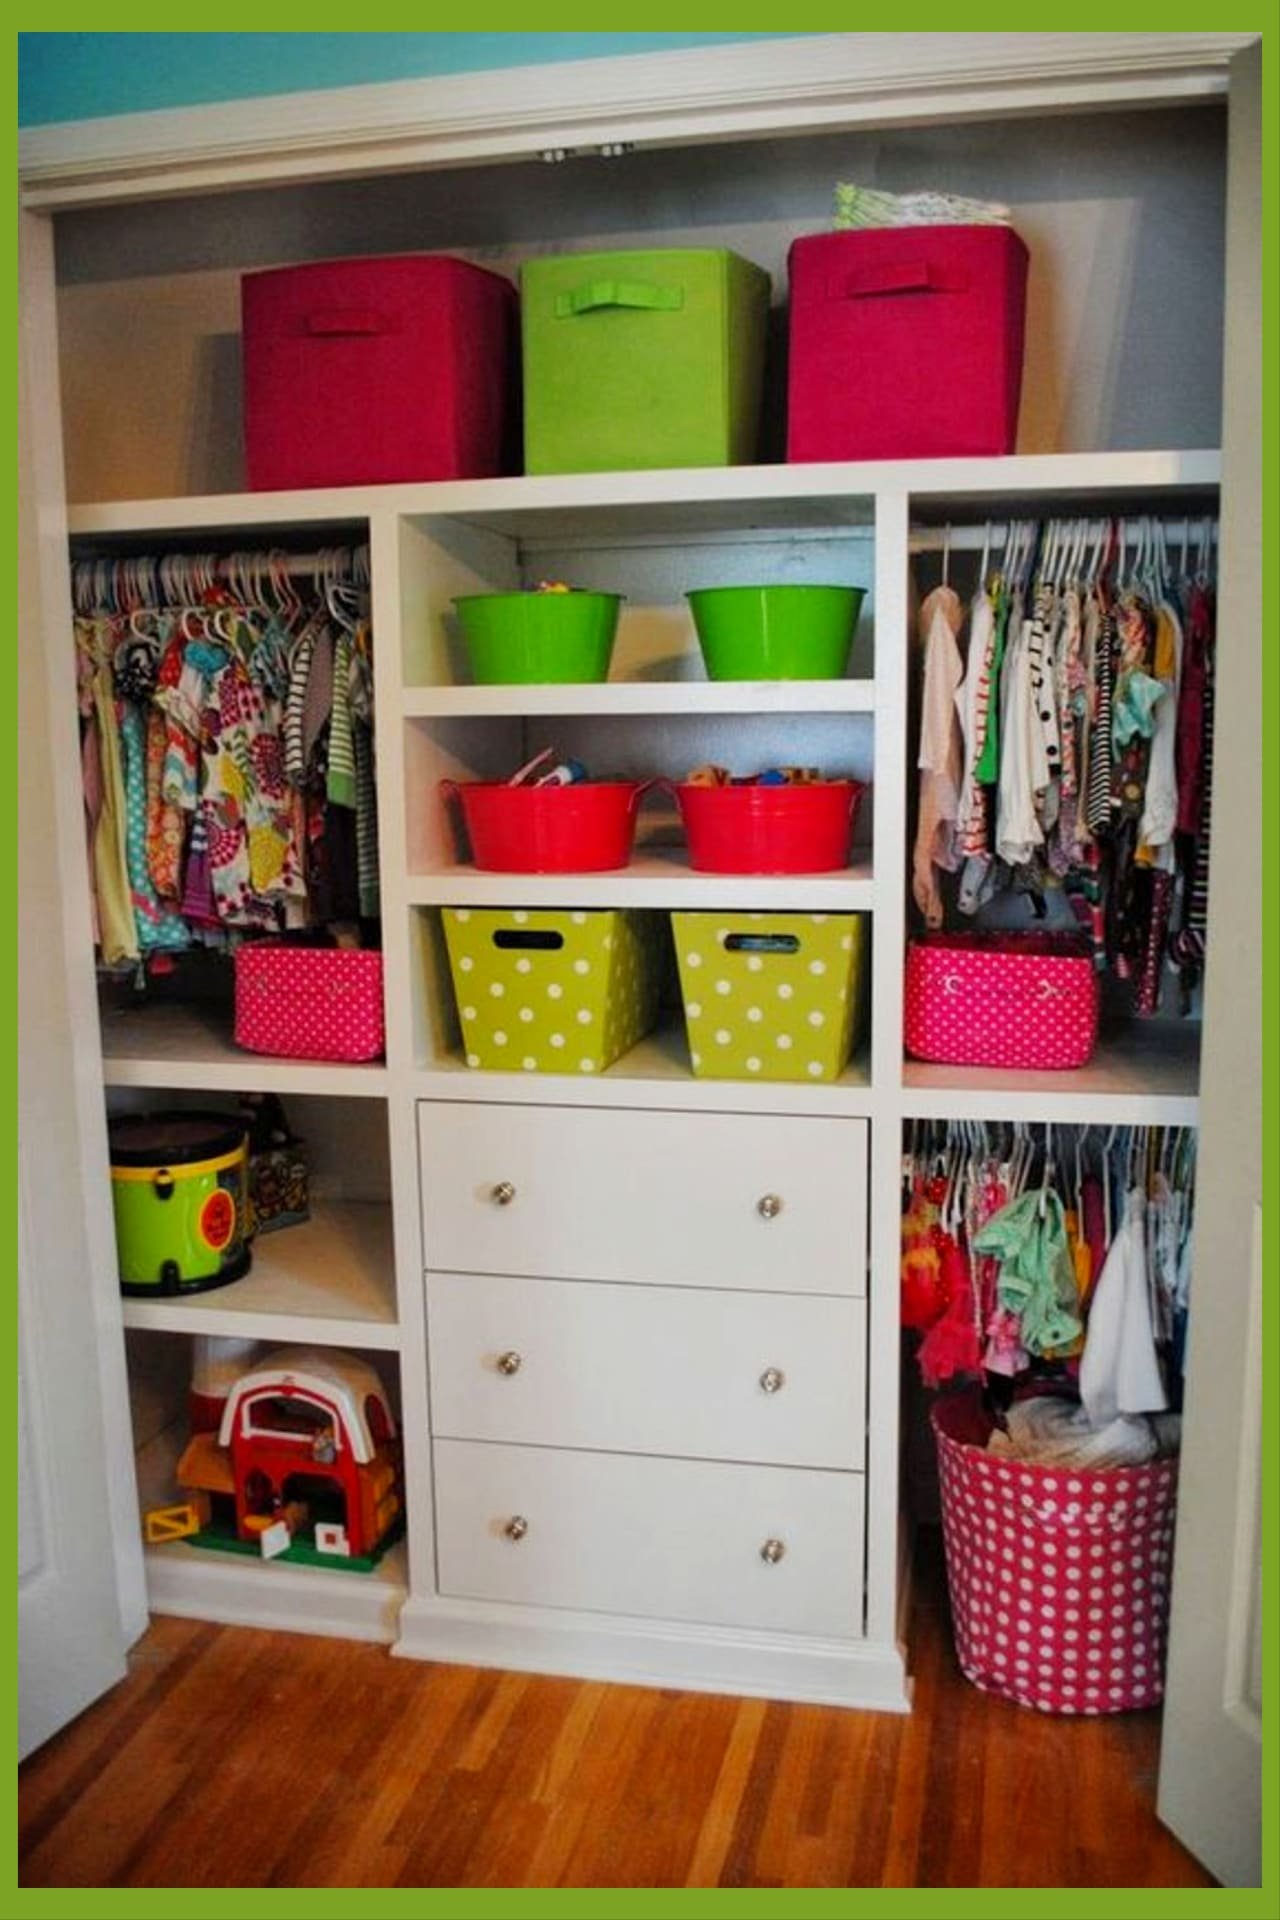 Baby nursery closet organization ideas and baby clothes organization ideas - super smart organization ideas for the home even if you're on a budget